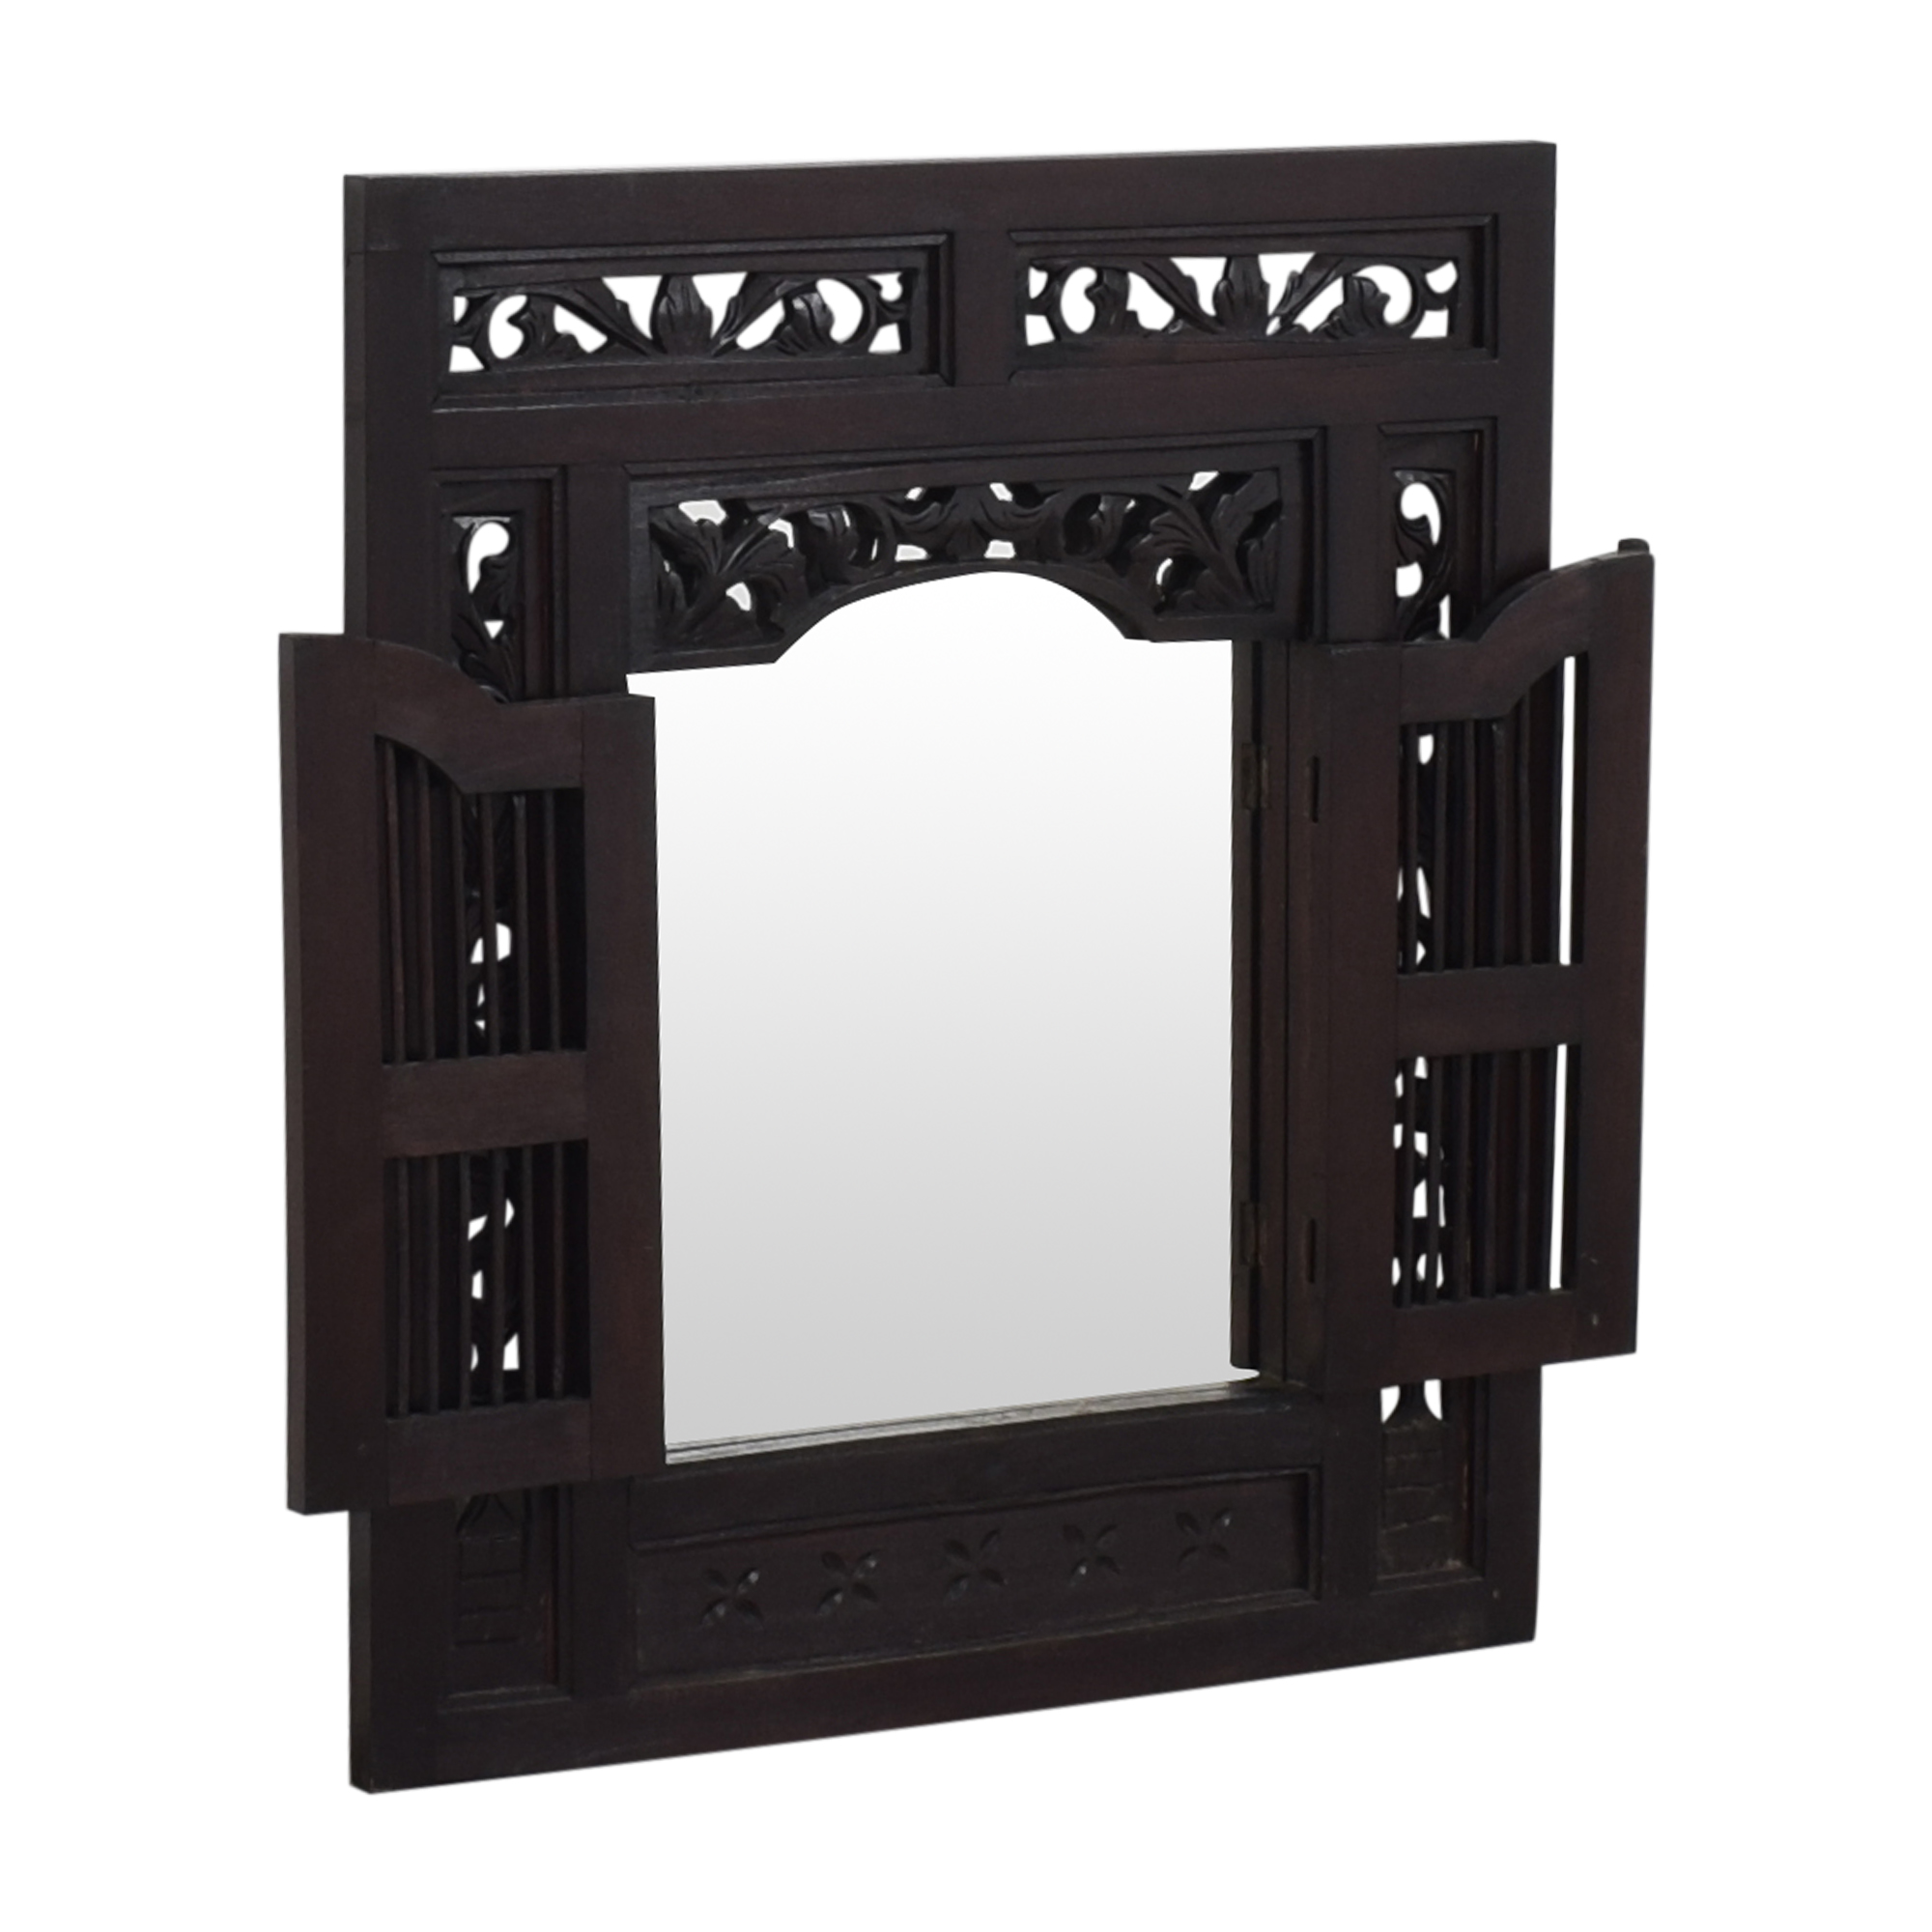 Indonesian-Style Wall Mirror  second hand